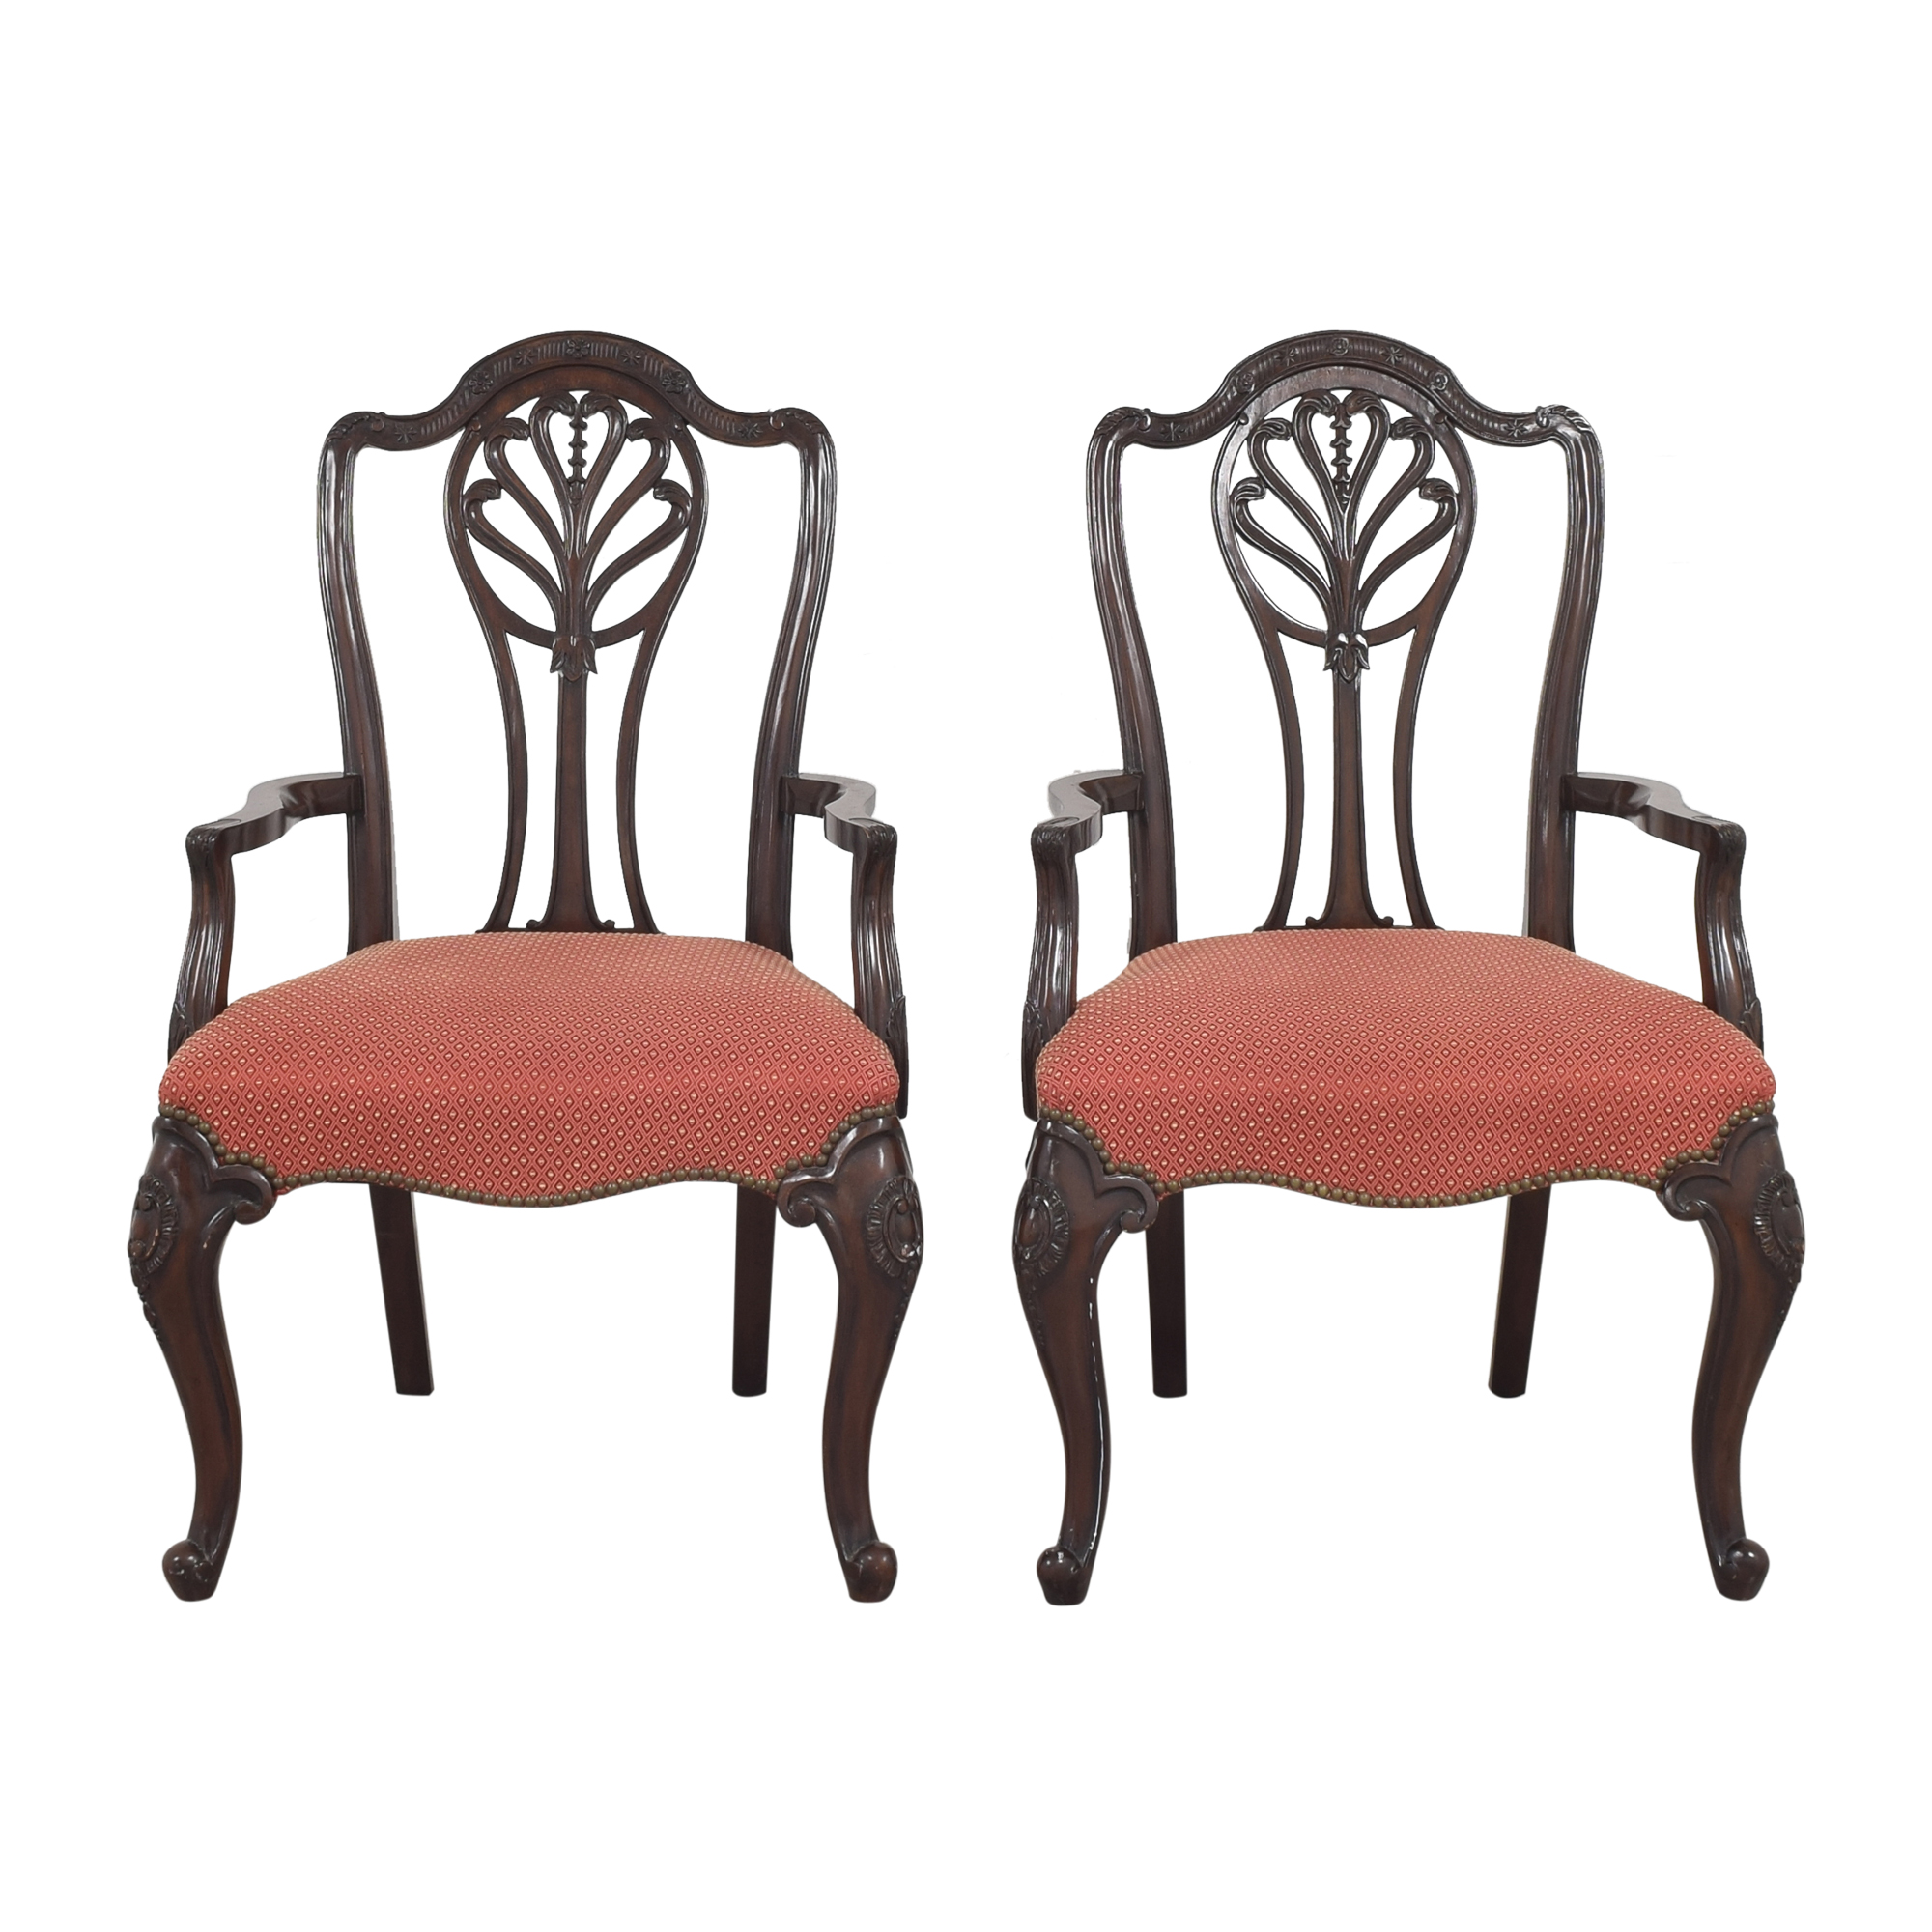 Drexel Heritage Drexel Heritage Upholstered Dining Arm Chairs nj